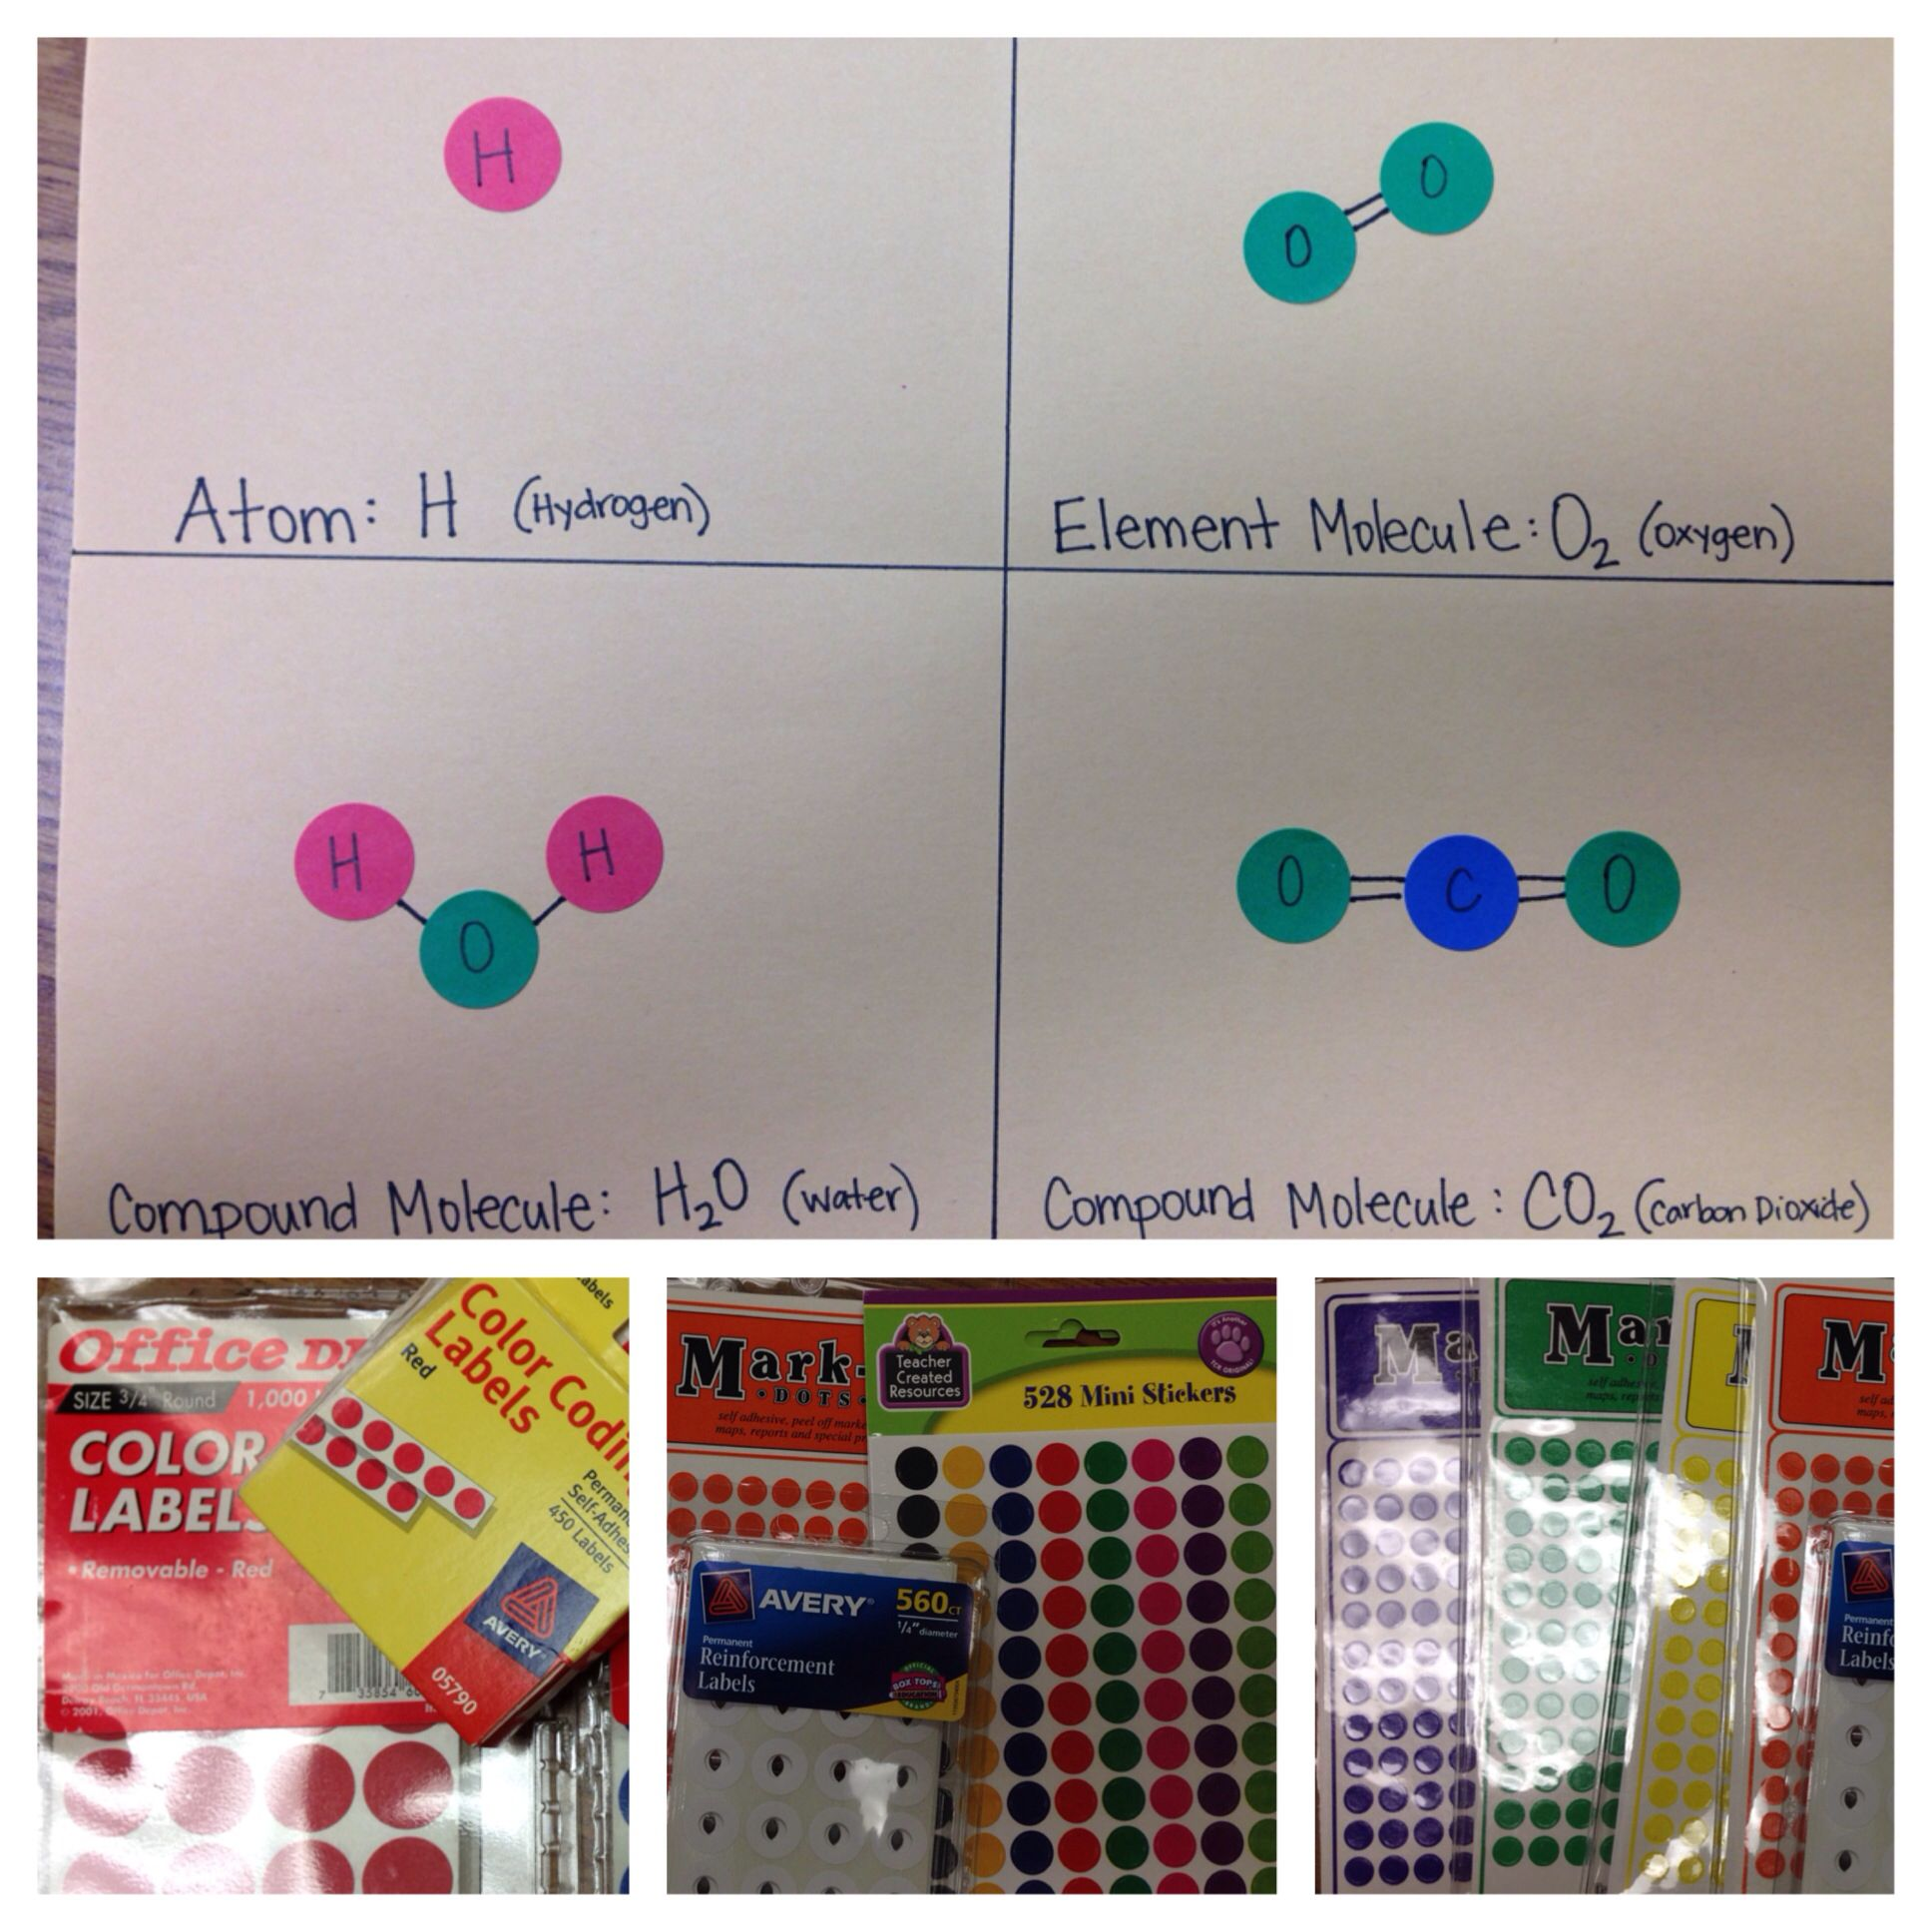 Atoms Elements Molecules And Compound Molecules For Science Use Circle Color Coding Labels